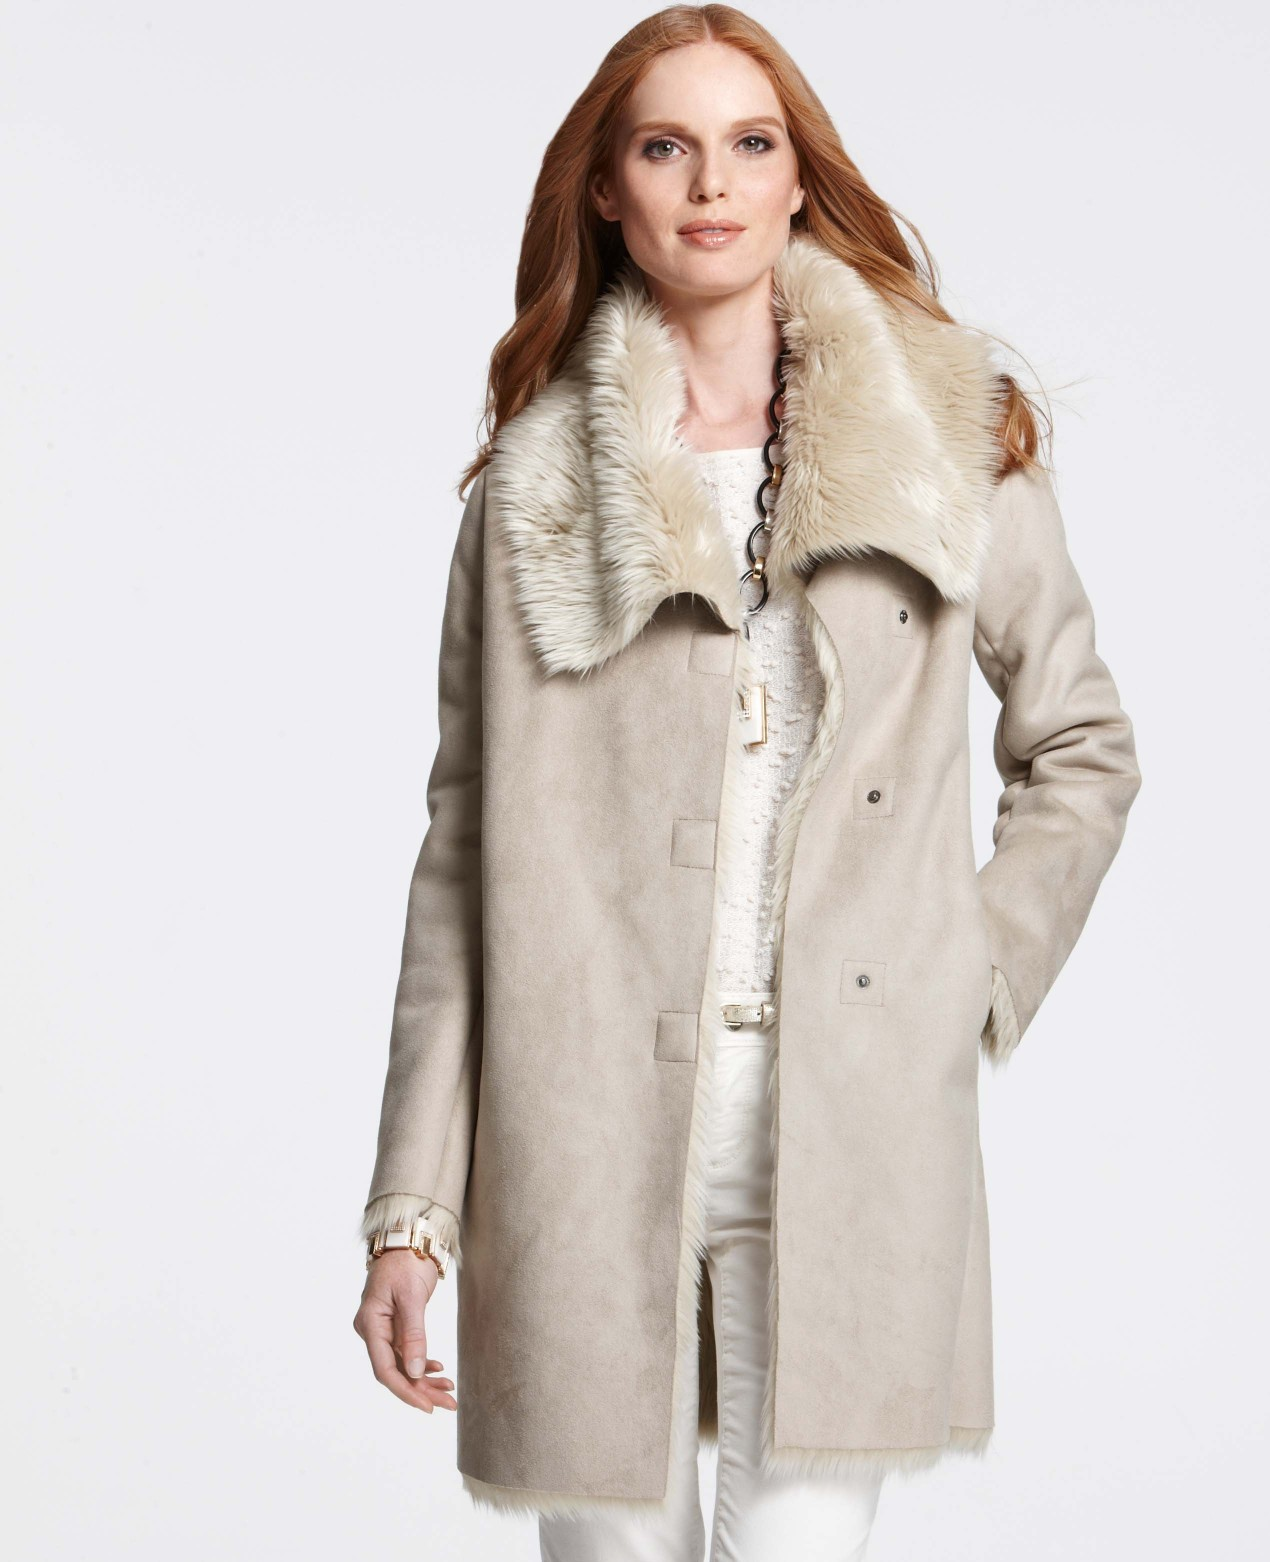 Ann taylor Faux Shearling Coat in Natural | Lyst